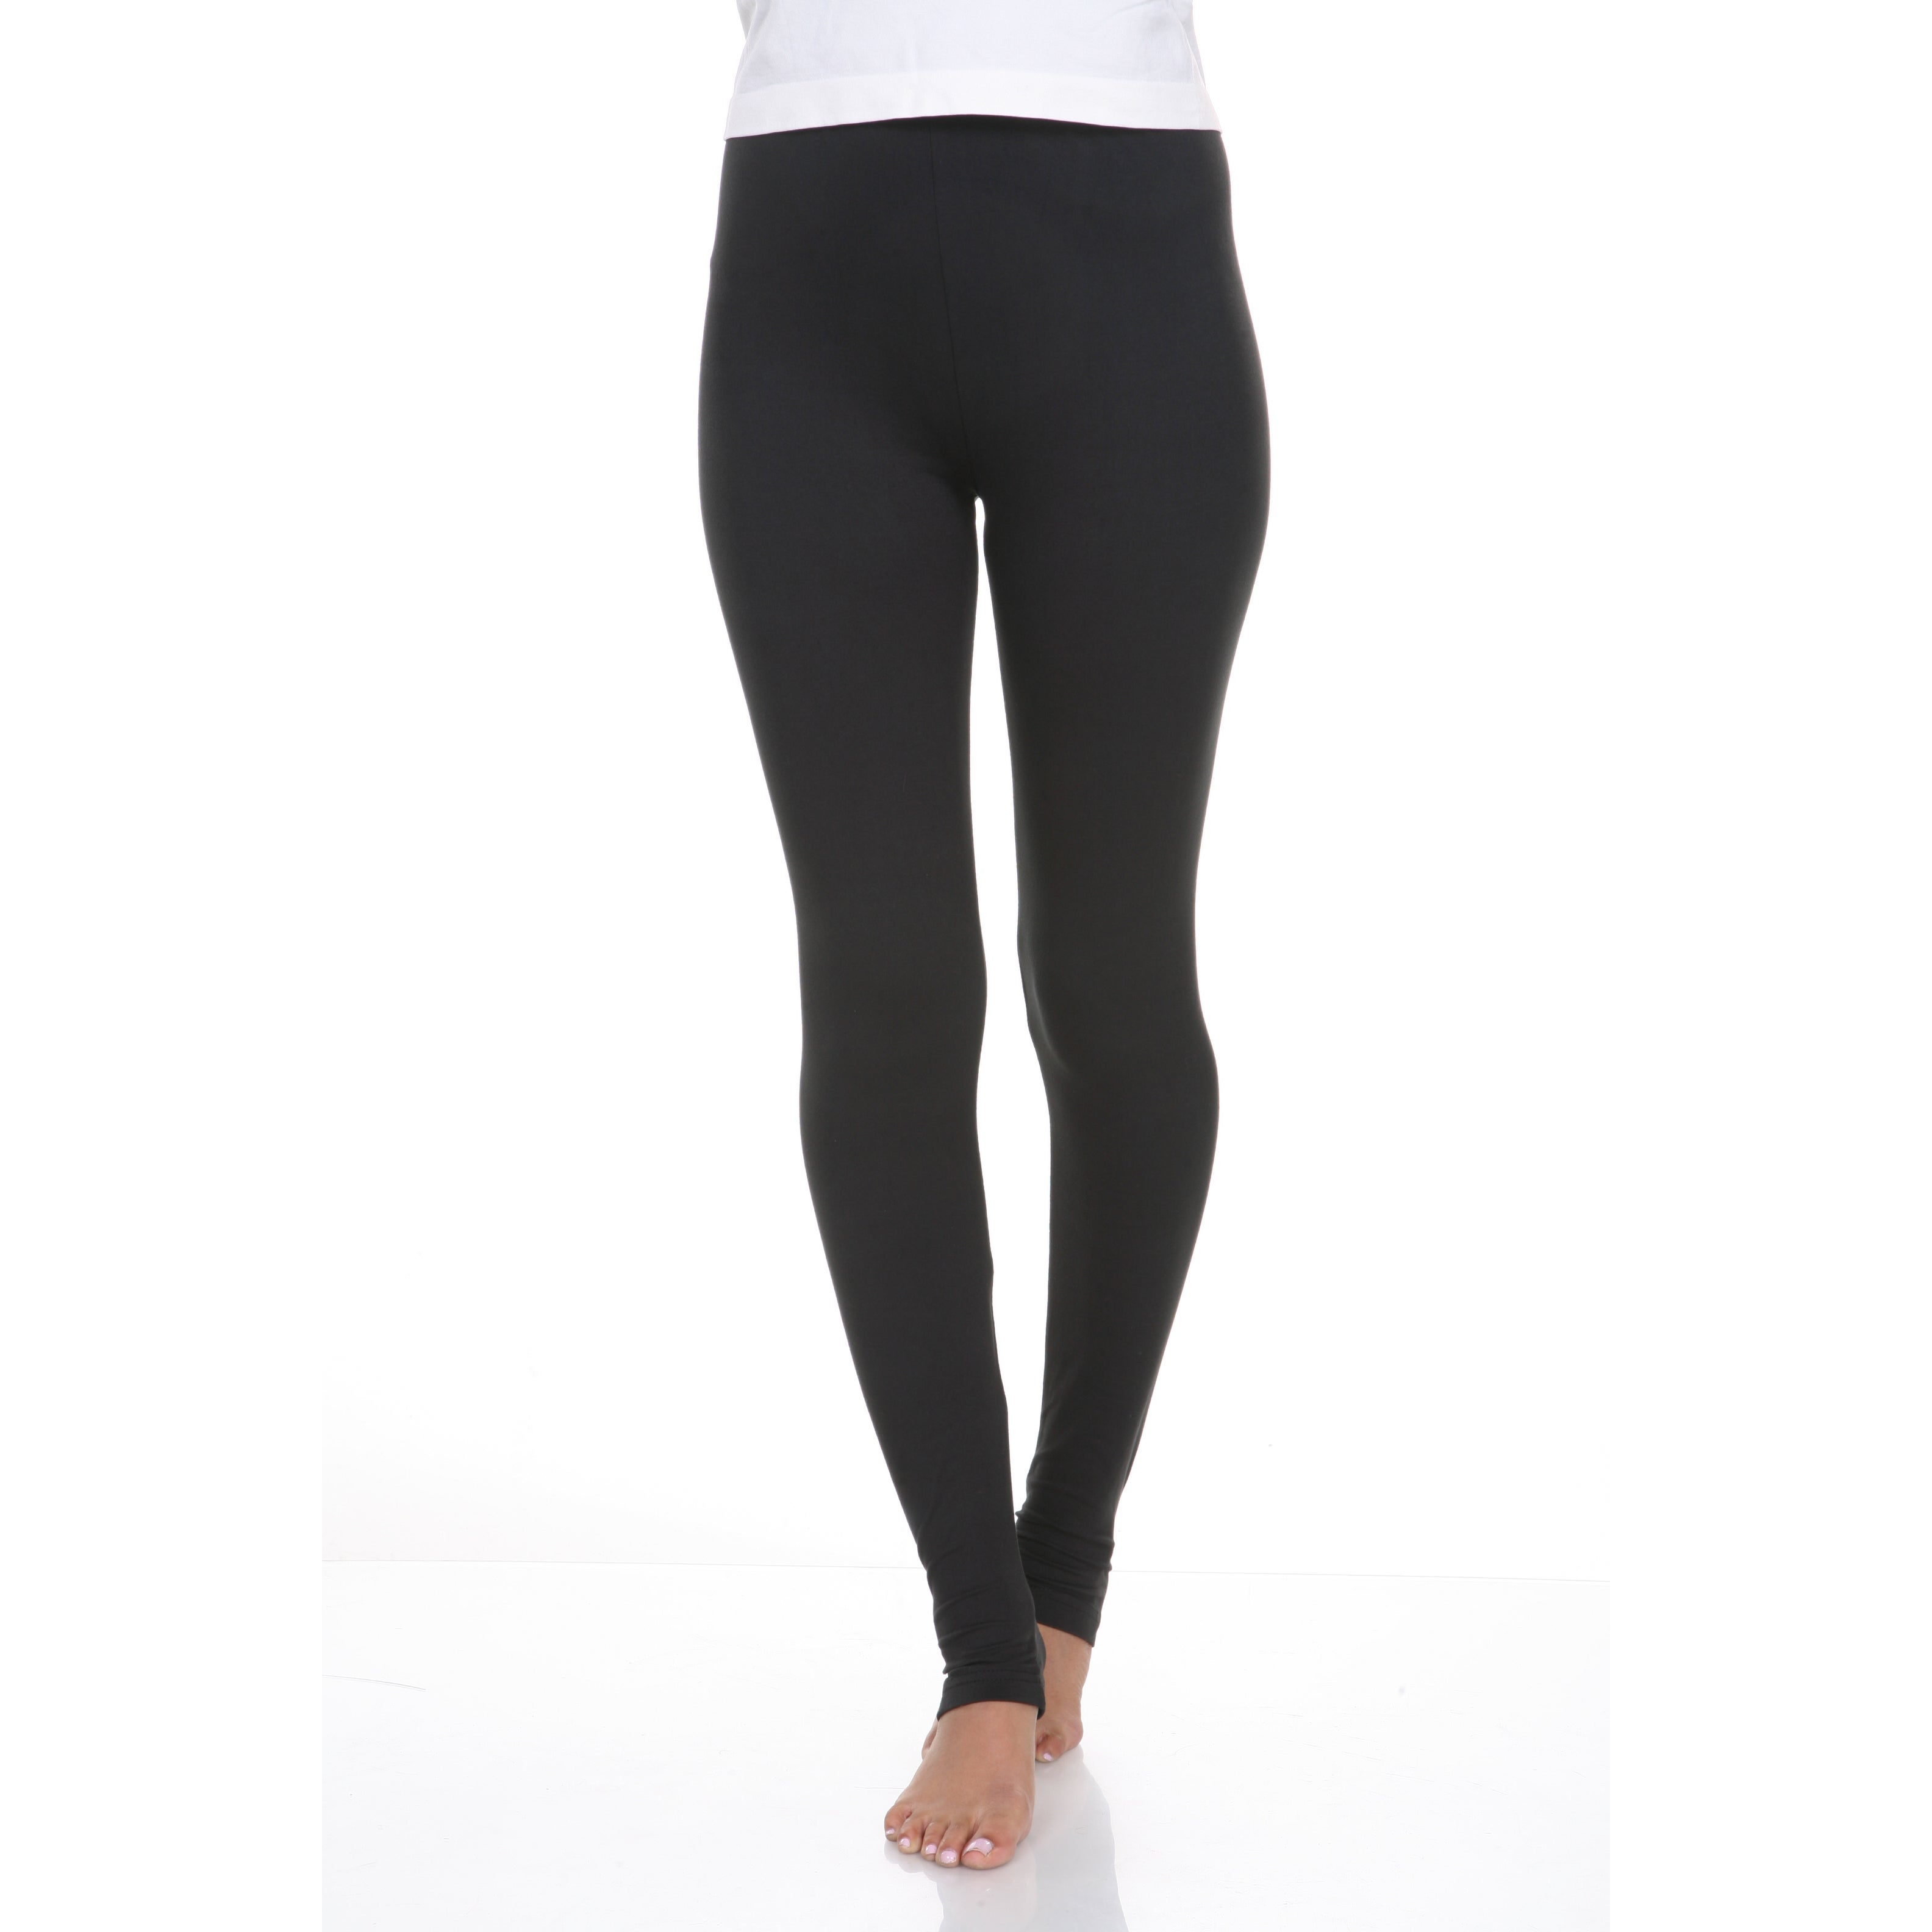 99ad95b527b1d Buy Cotton Lounge Pants Online at Overstock